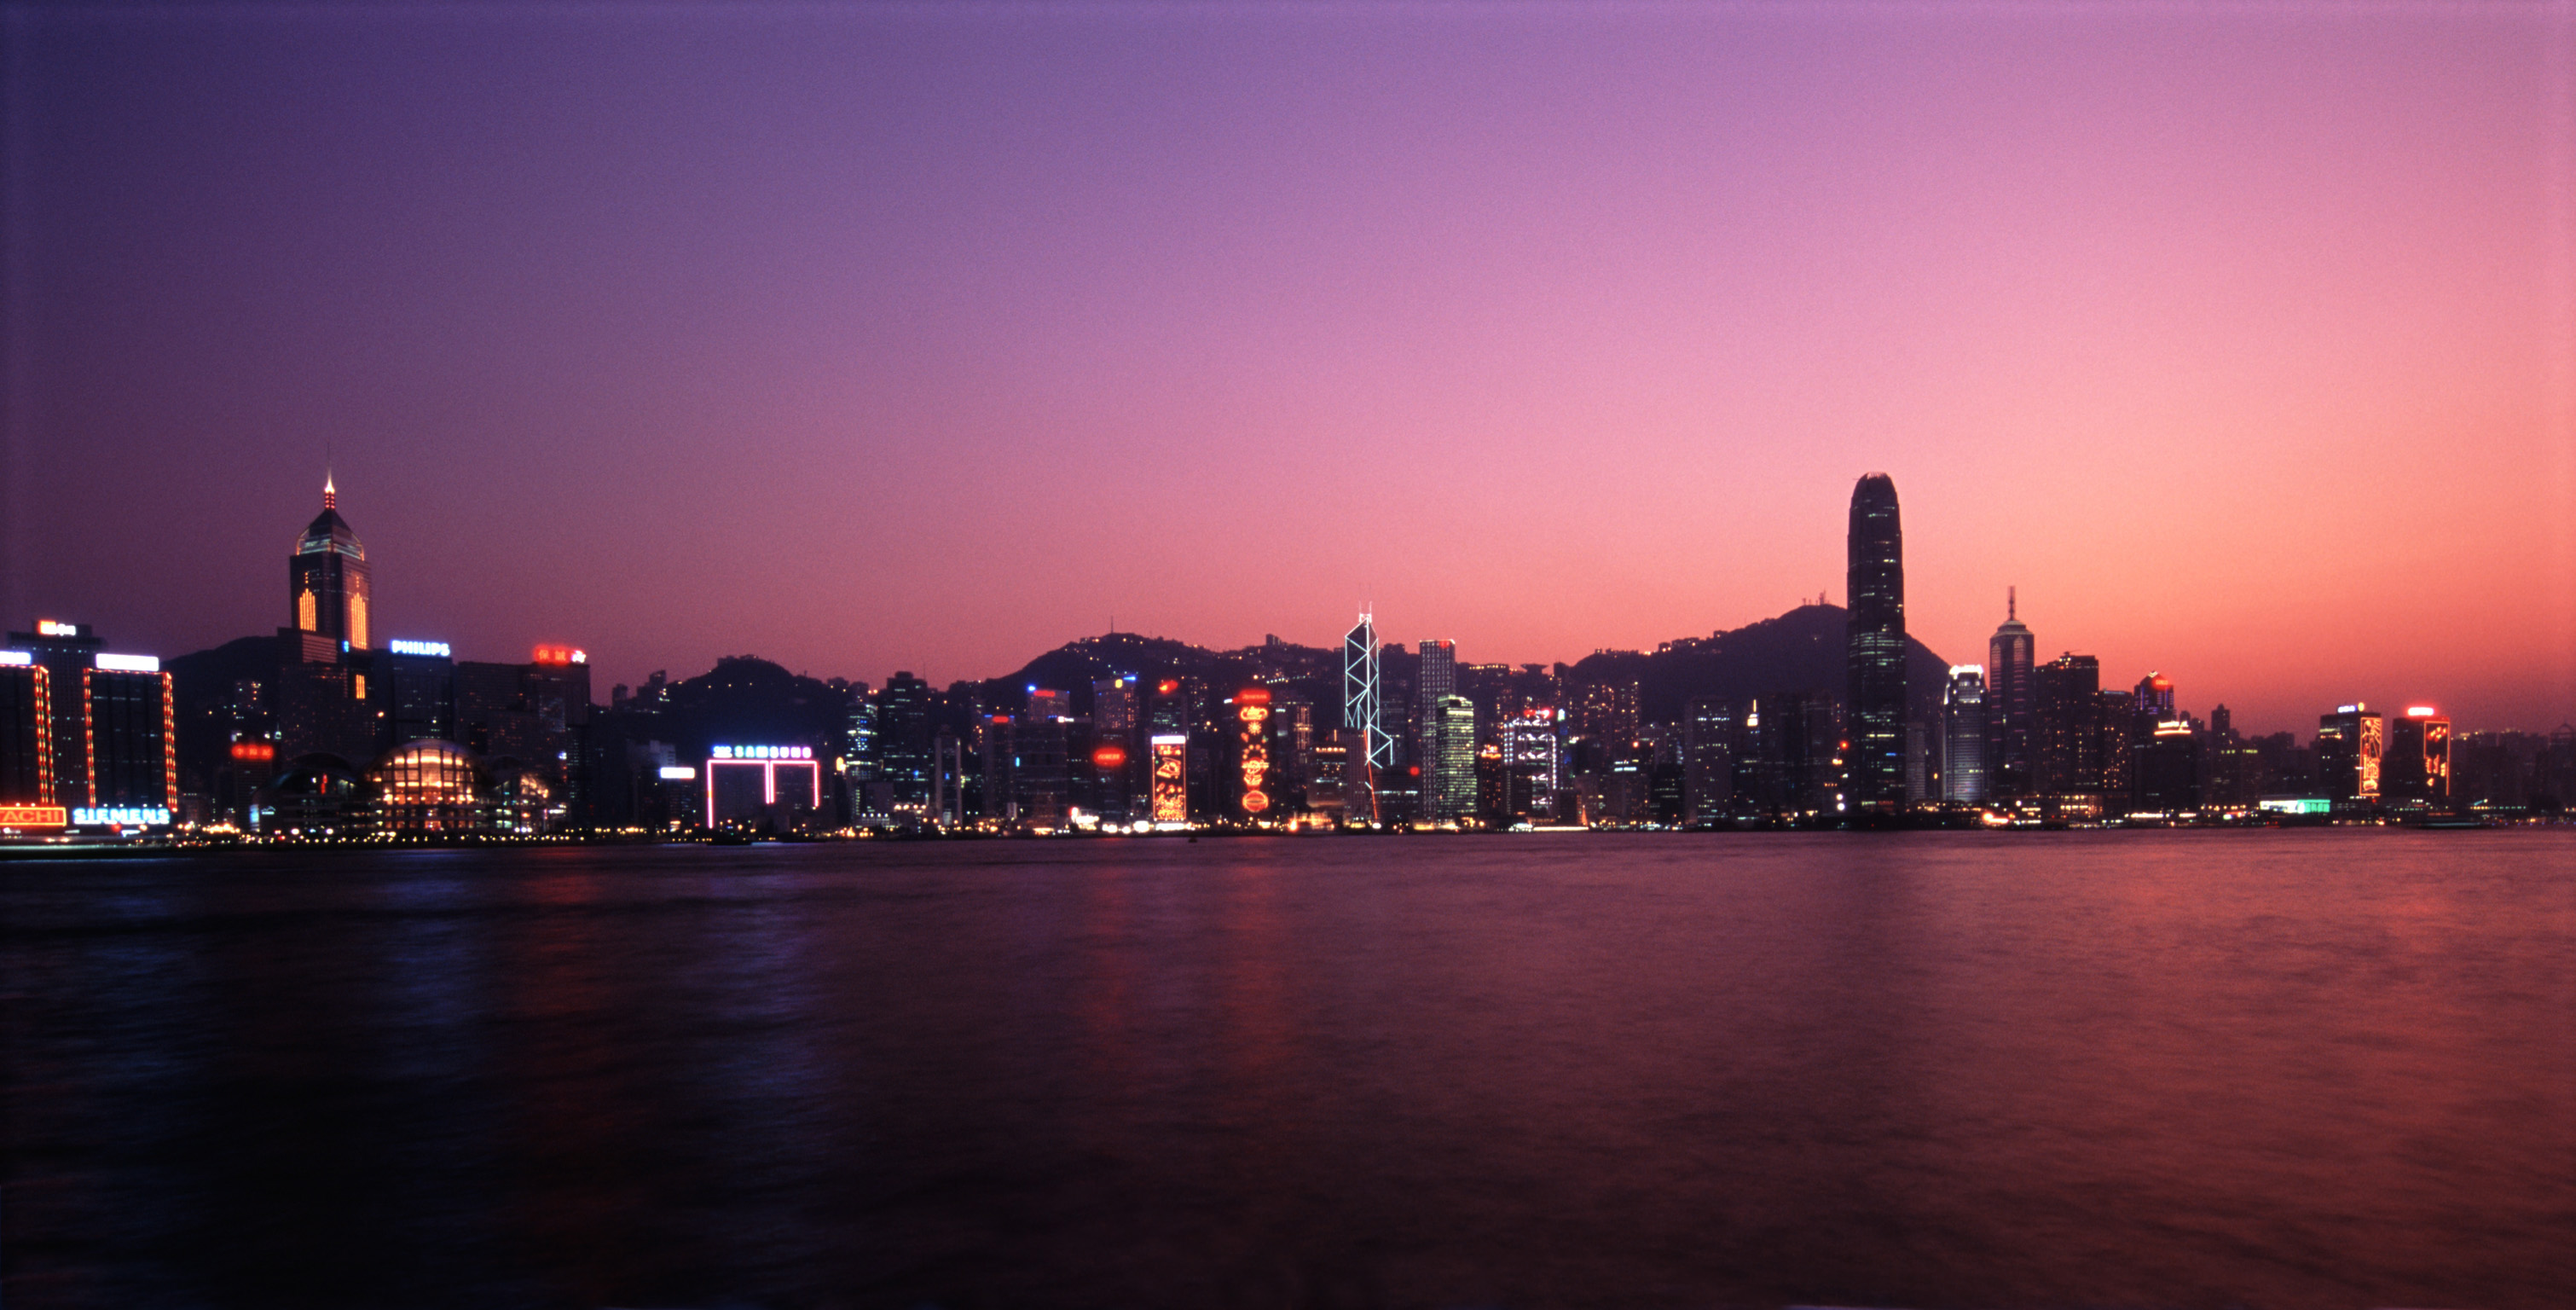 Beautiful Panoramic View of Hong Kong During Night Time. Captured with Architectural Buildings Afar.